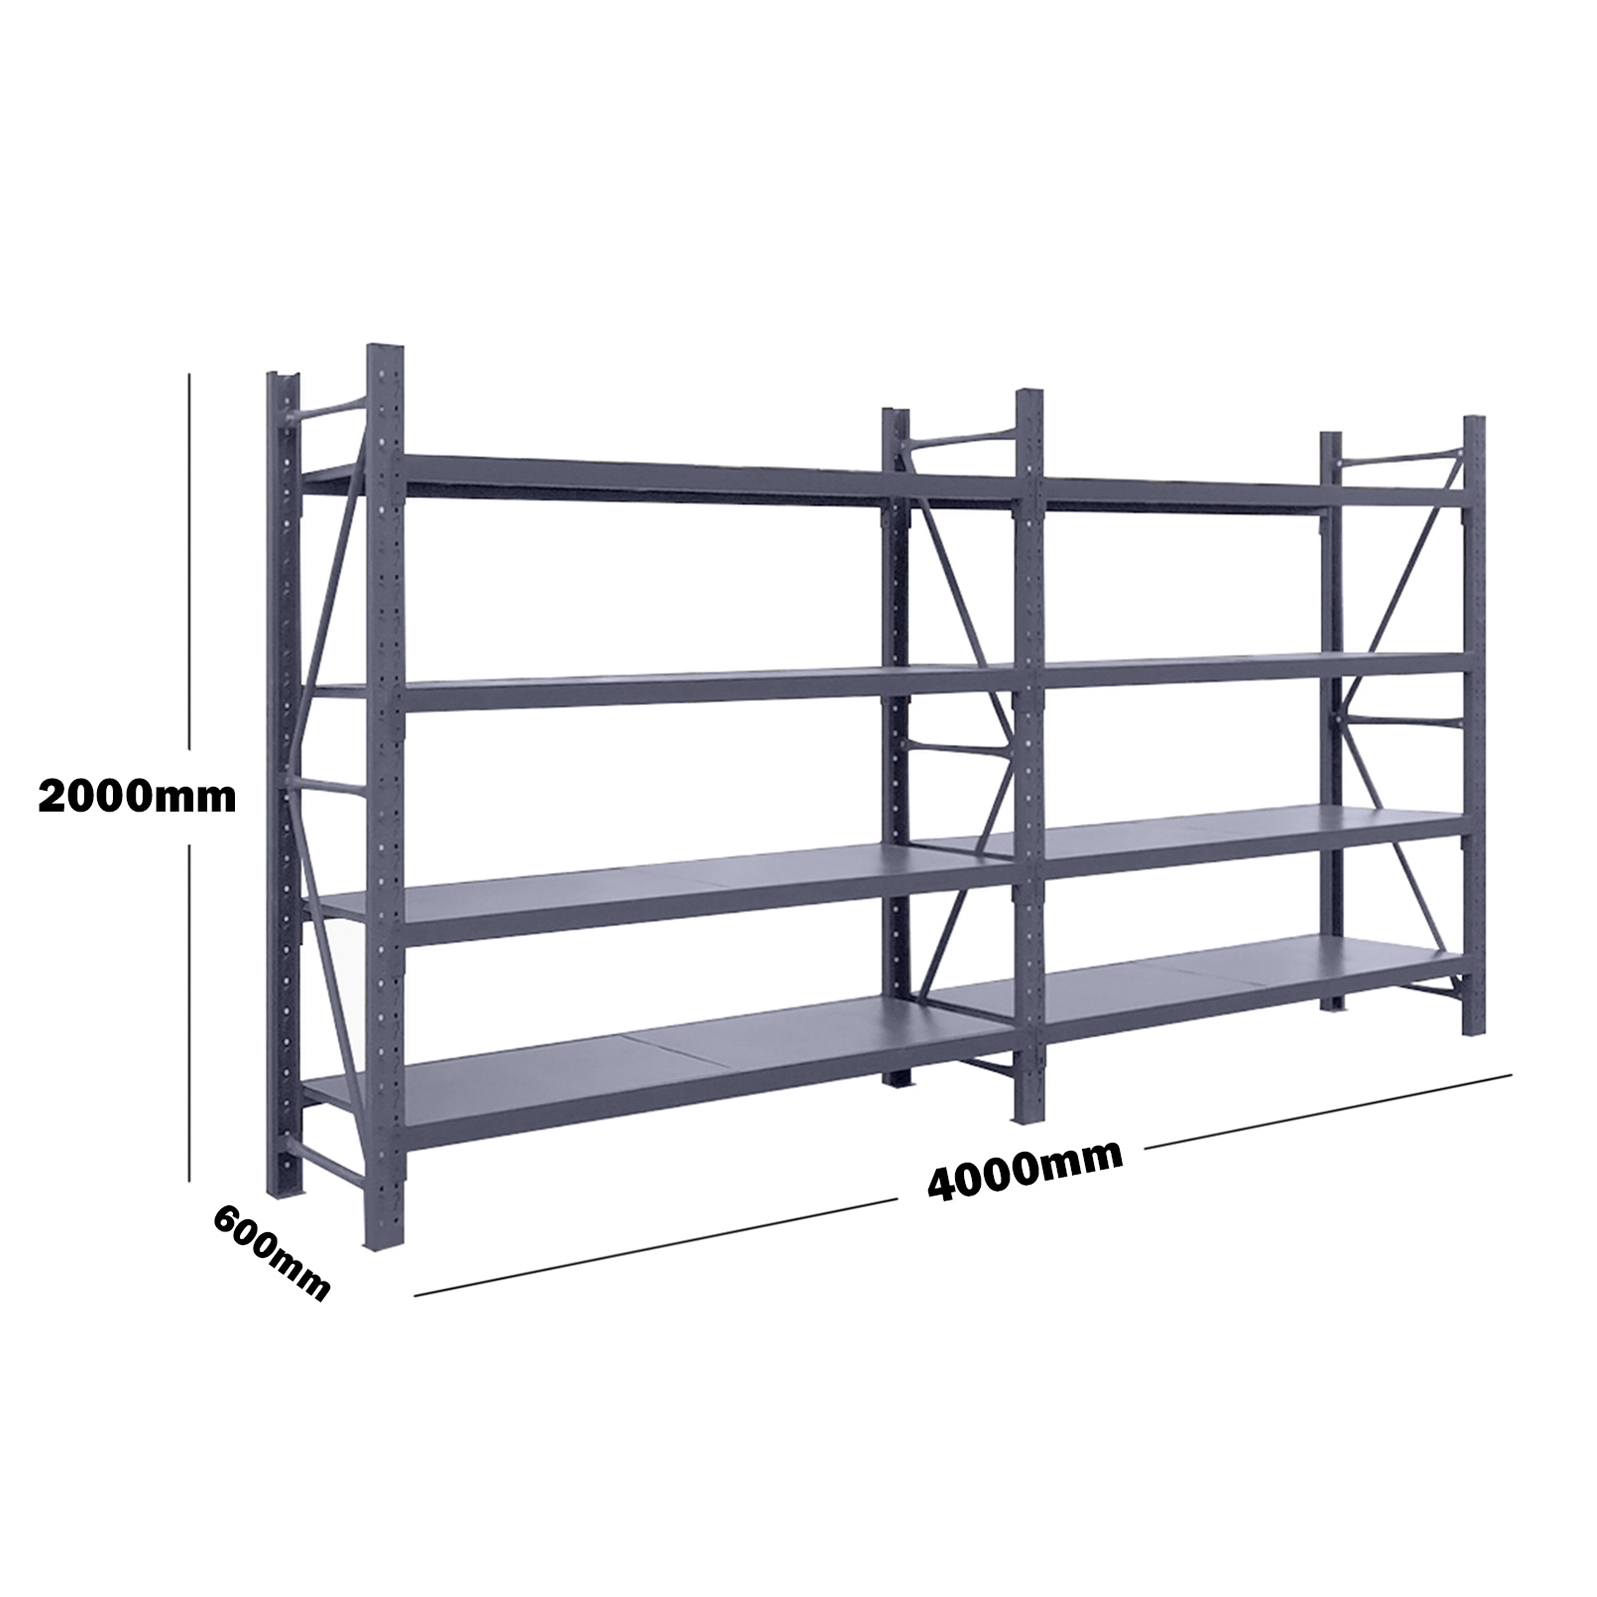 4M(L) x 2M(H) x 0.6M(D) Shelves Racking Metal Steel Charcoal 4020C